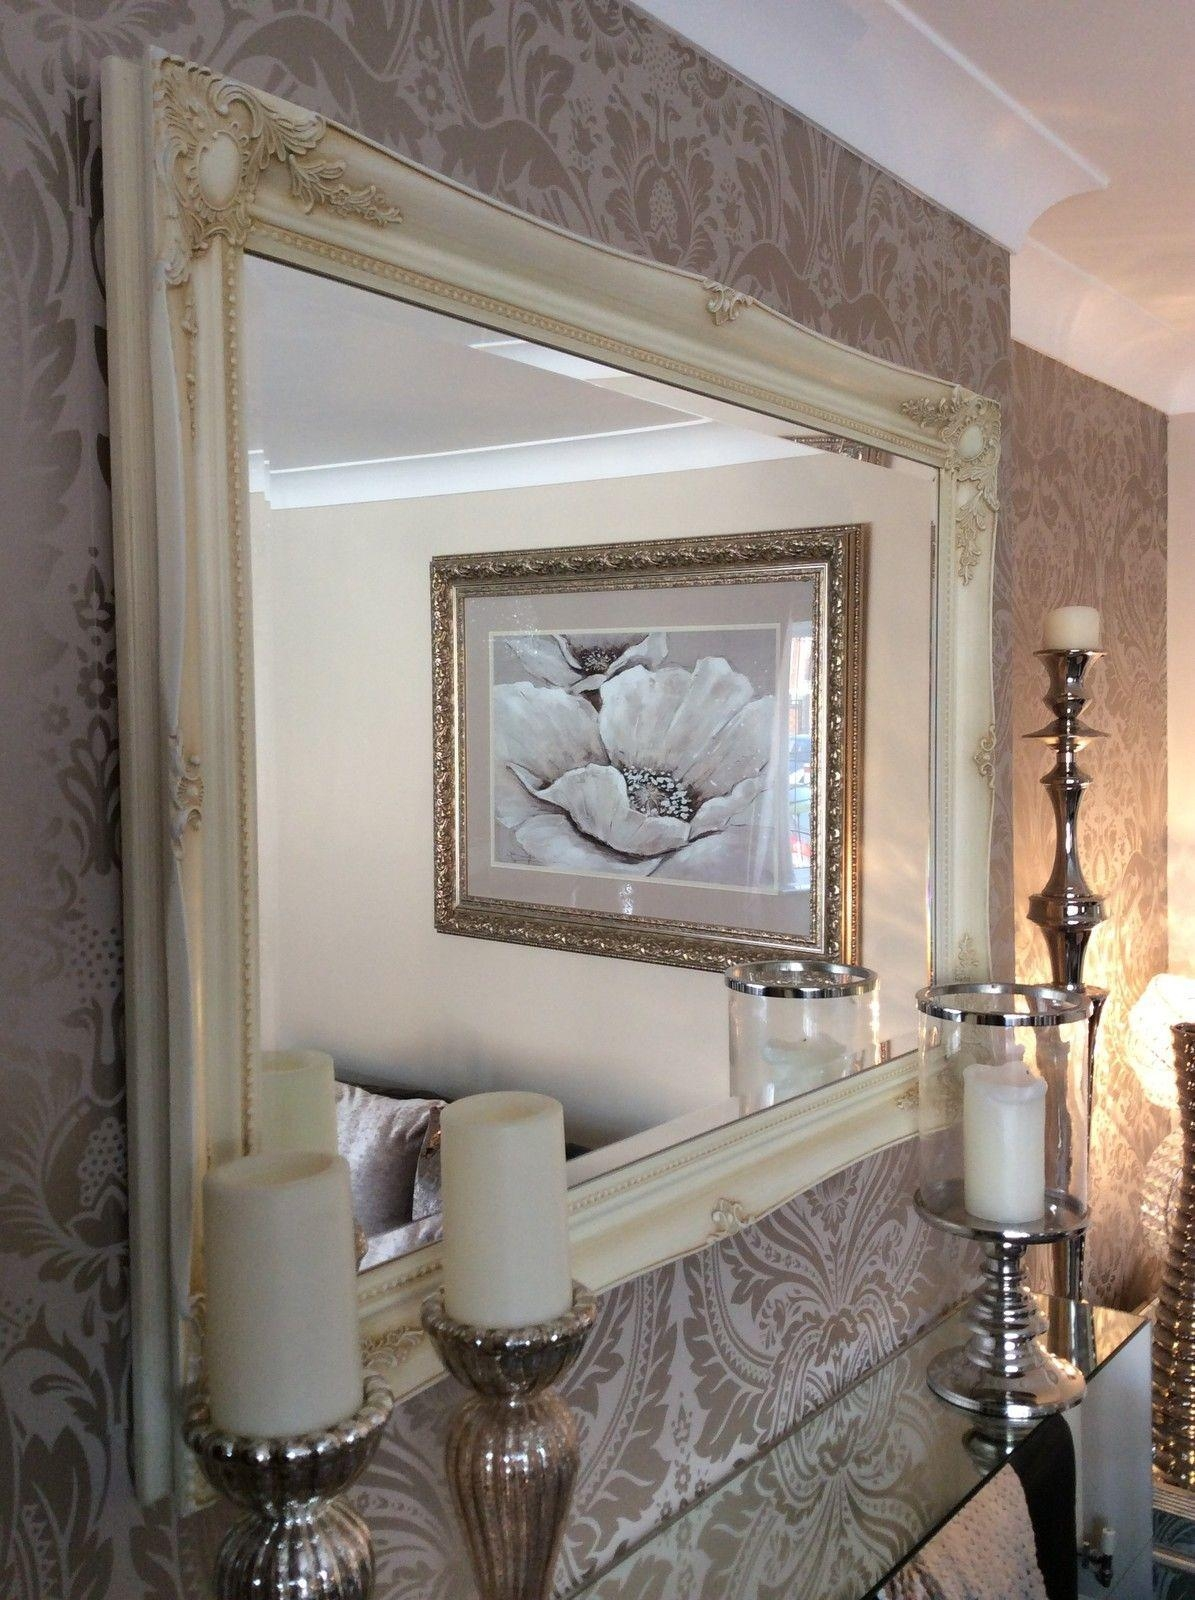 Shabby Chic Wall Mirror 130 Inspiring Style For Fabulous Large With Extra Large Ornate Mirror (Image 19 of 20)